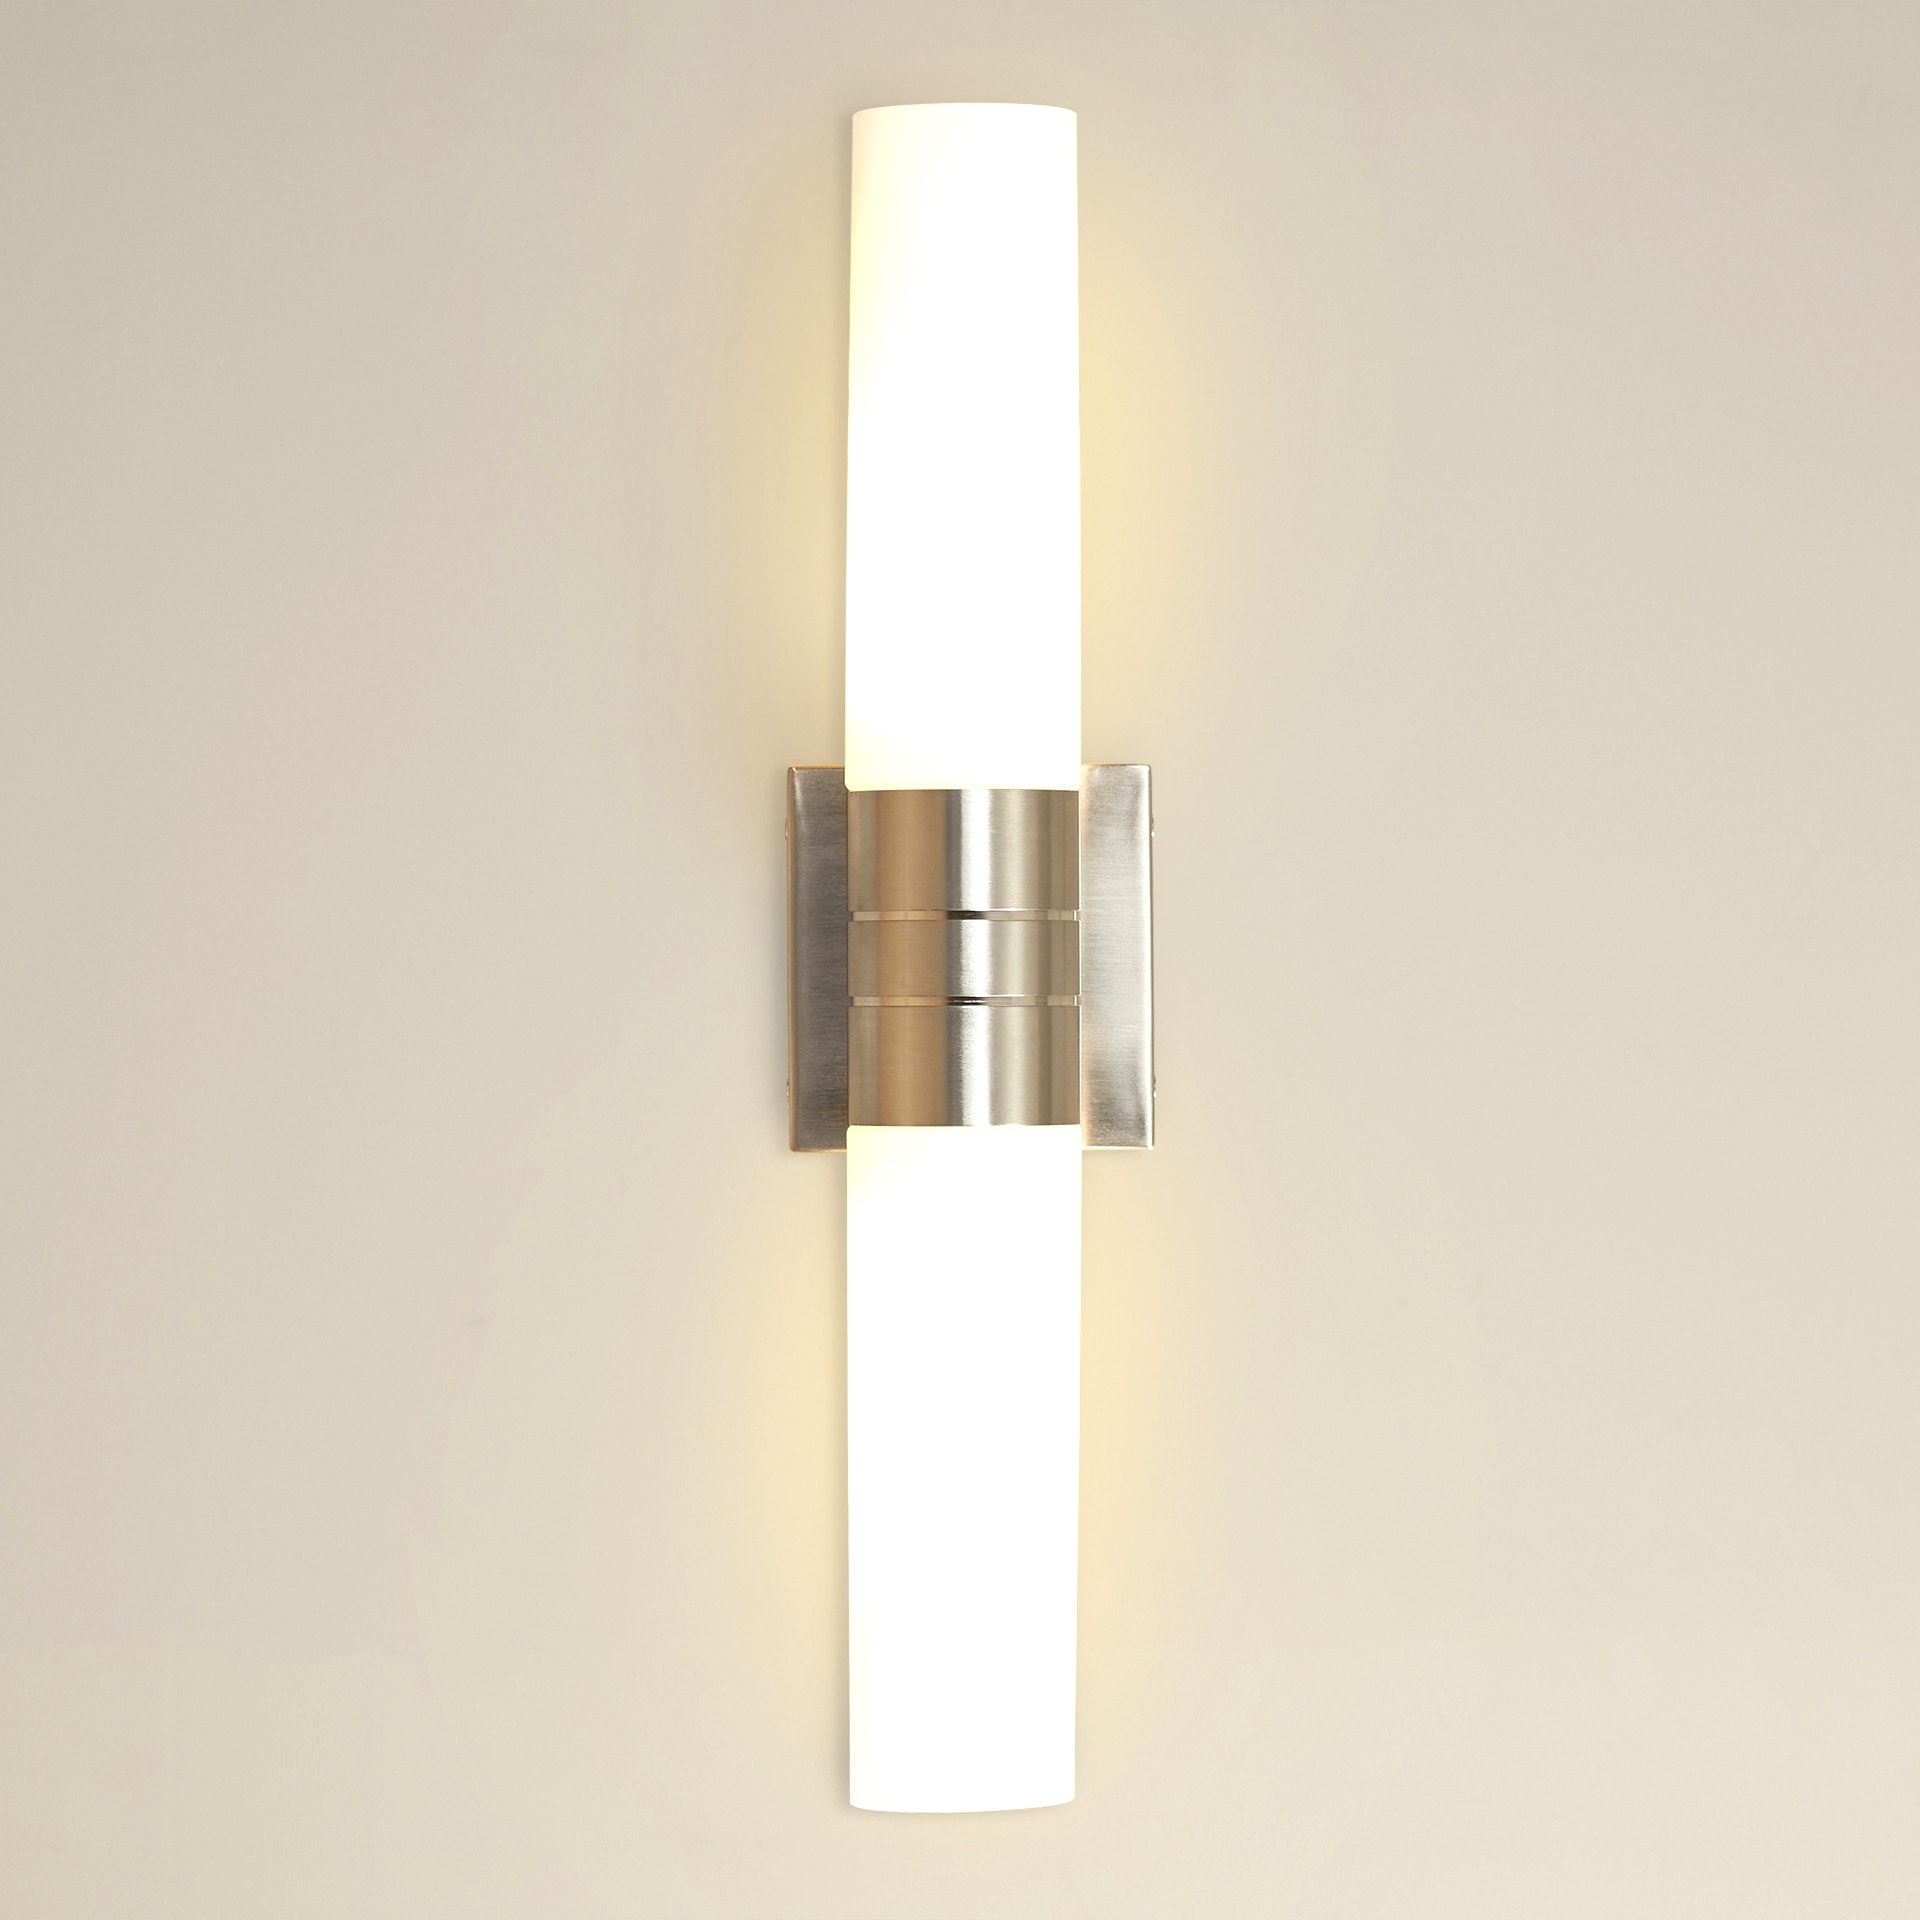 Wayfair Wall Lights With Battery Operated Outdoor Lights At Wayfair (#15 of 15)